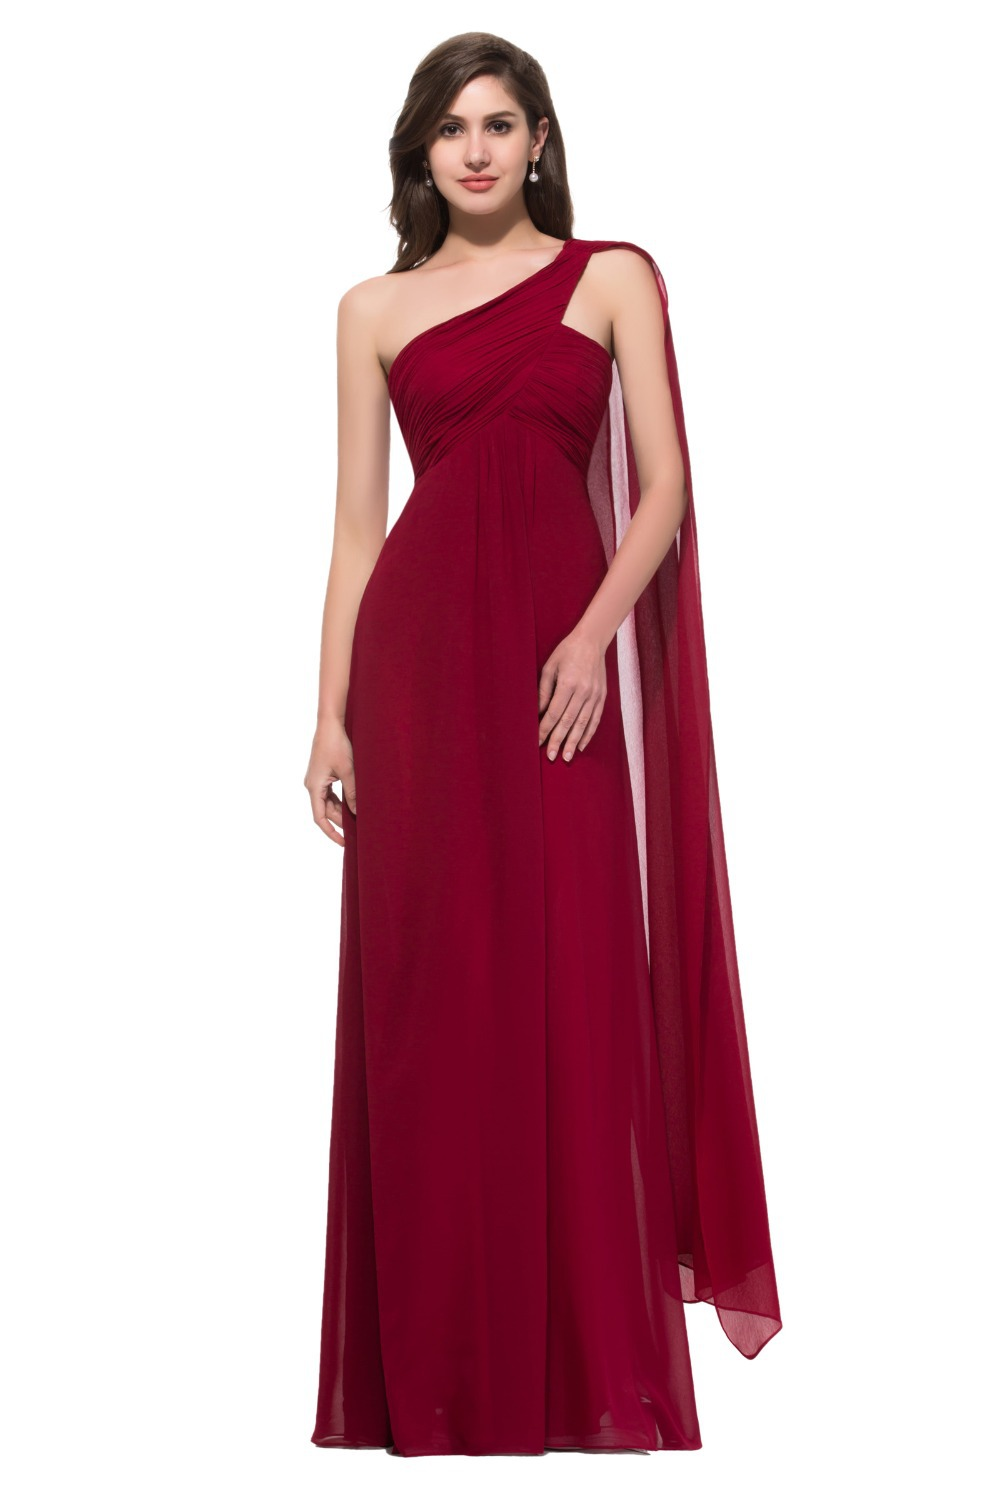 Elegant Style Grace Karin One Shoulder Dark Red Prom Dresses Floor Length Long Cheap Prom Gown With Streamer Chiffon CL008909